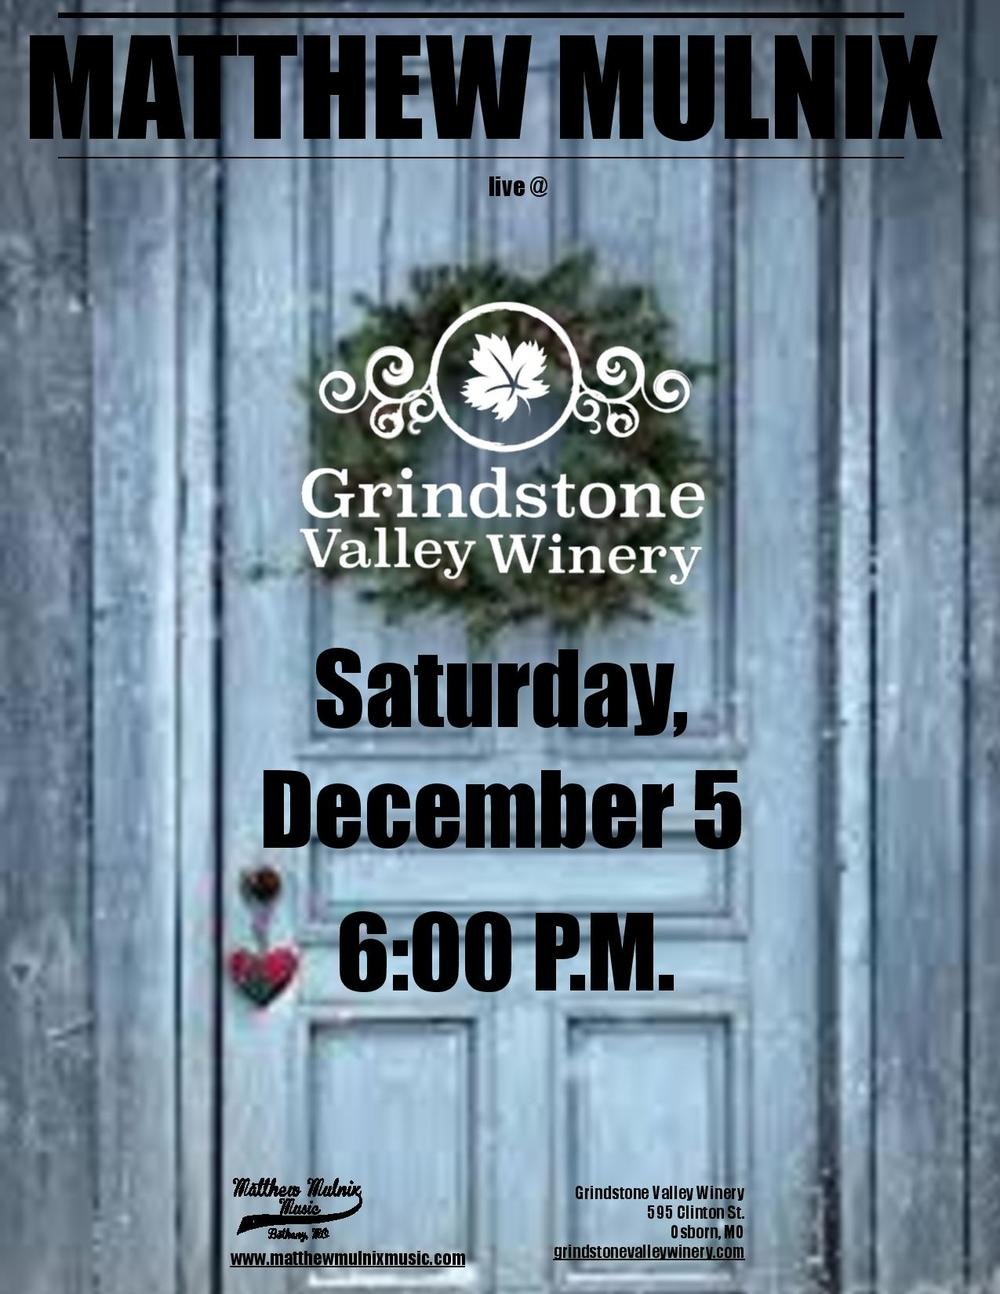 12-5-2015 Poster - Grindstone Valley Winery - Matthew Mulnix-page-001.jpg